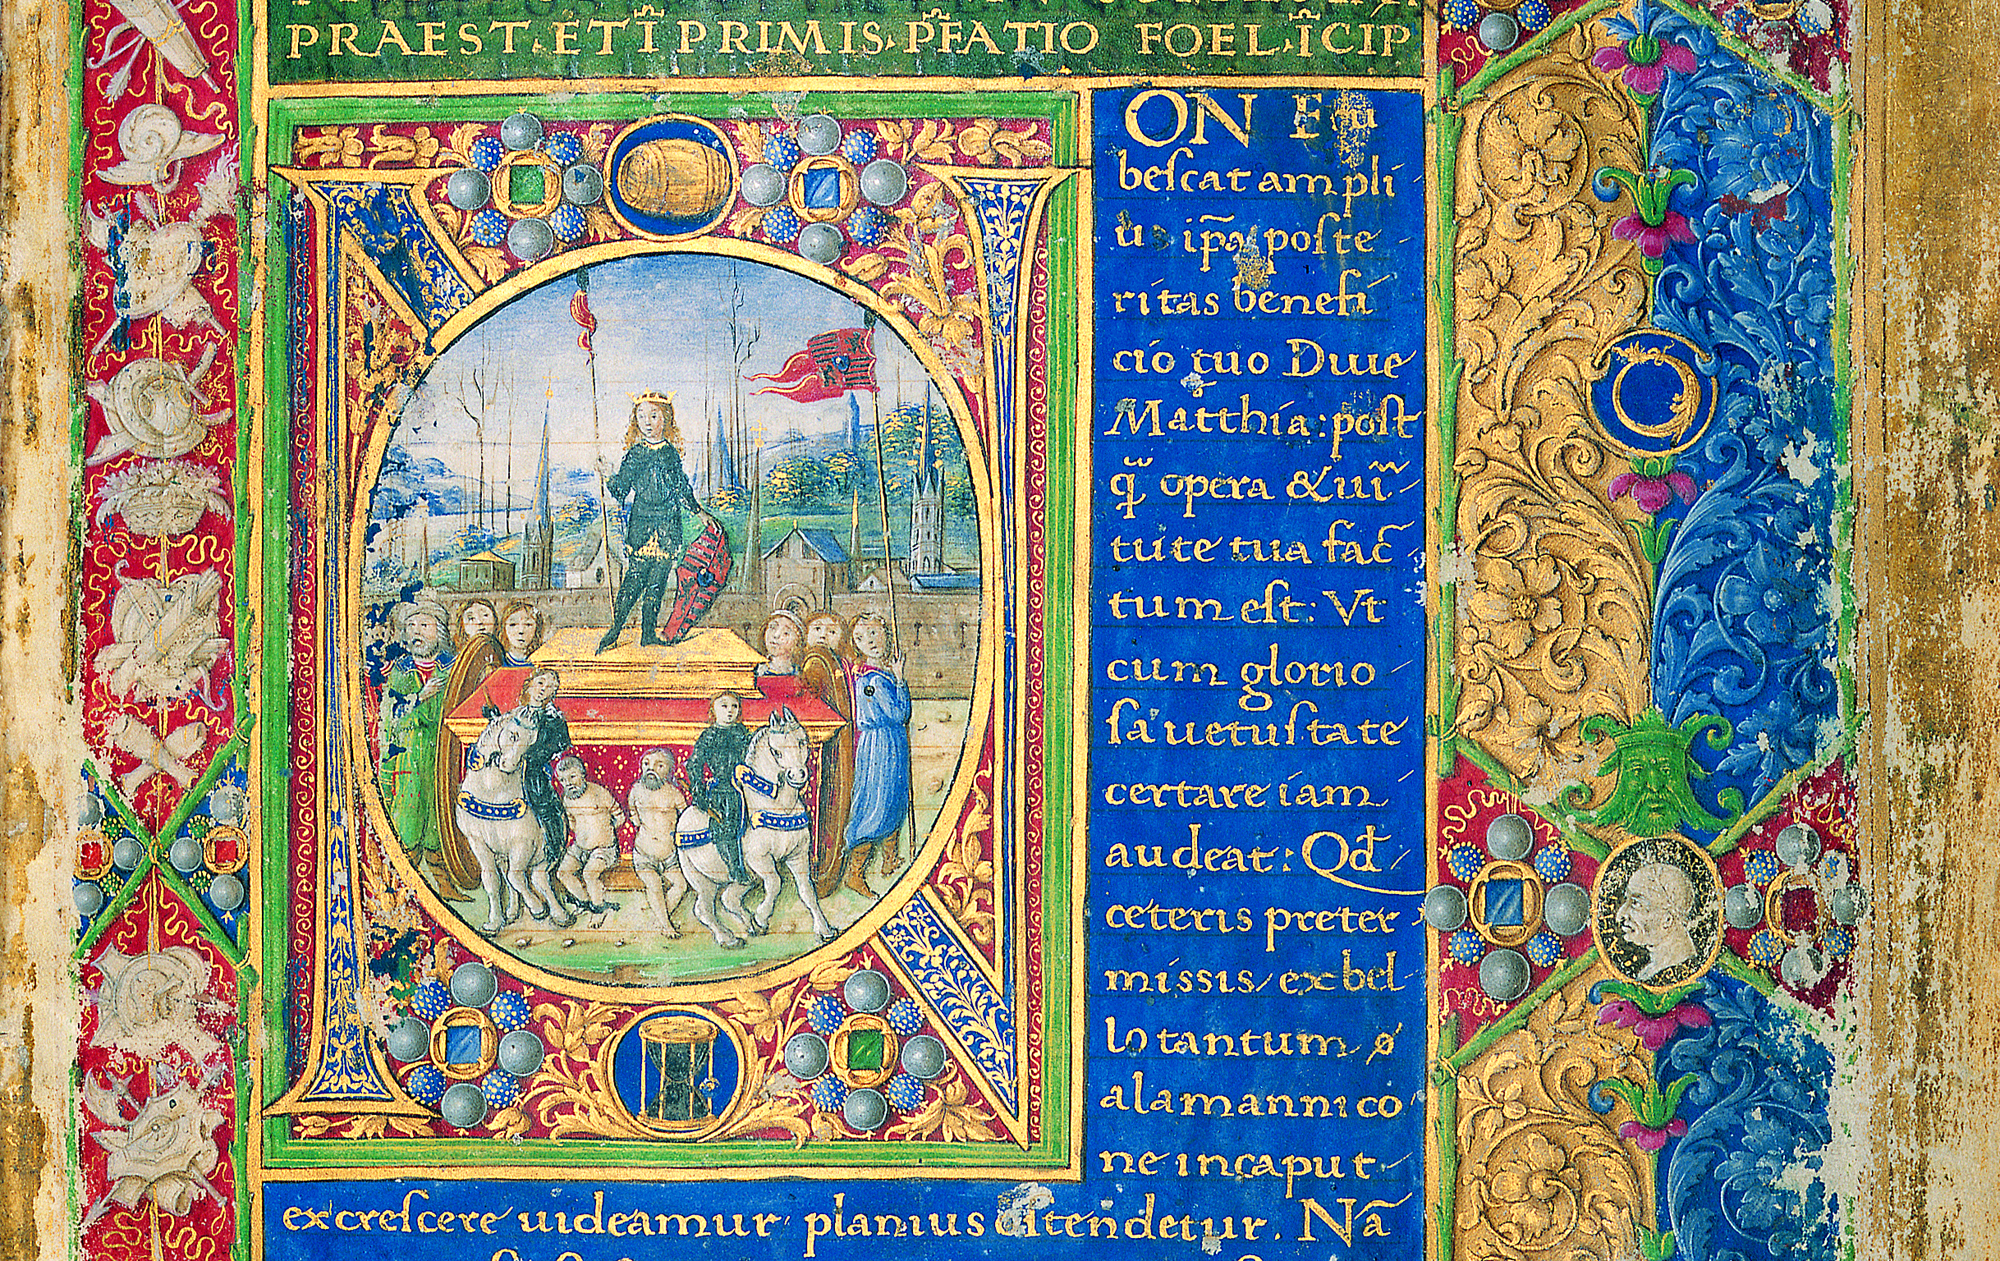 Right-side frontispiece of the Philostratos corvina. In the initial, John Corvinus on the triumphal chariot is displayed. The portrait in the right upper corner is presumably that of court historian Antonio Bonfini. Budapest, NSZL, OSZK Cod. Lat. 417., f. 2r, detail